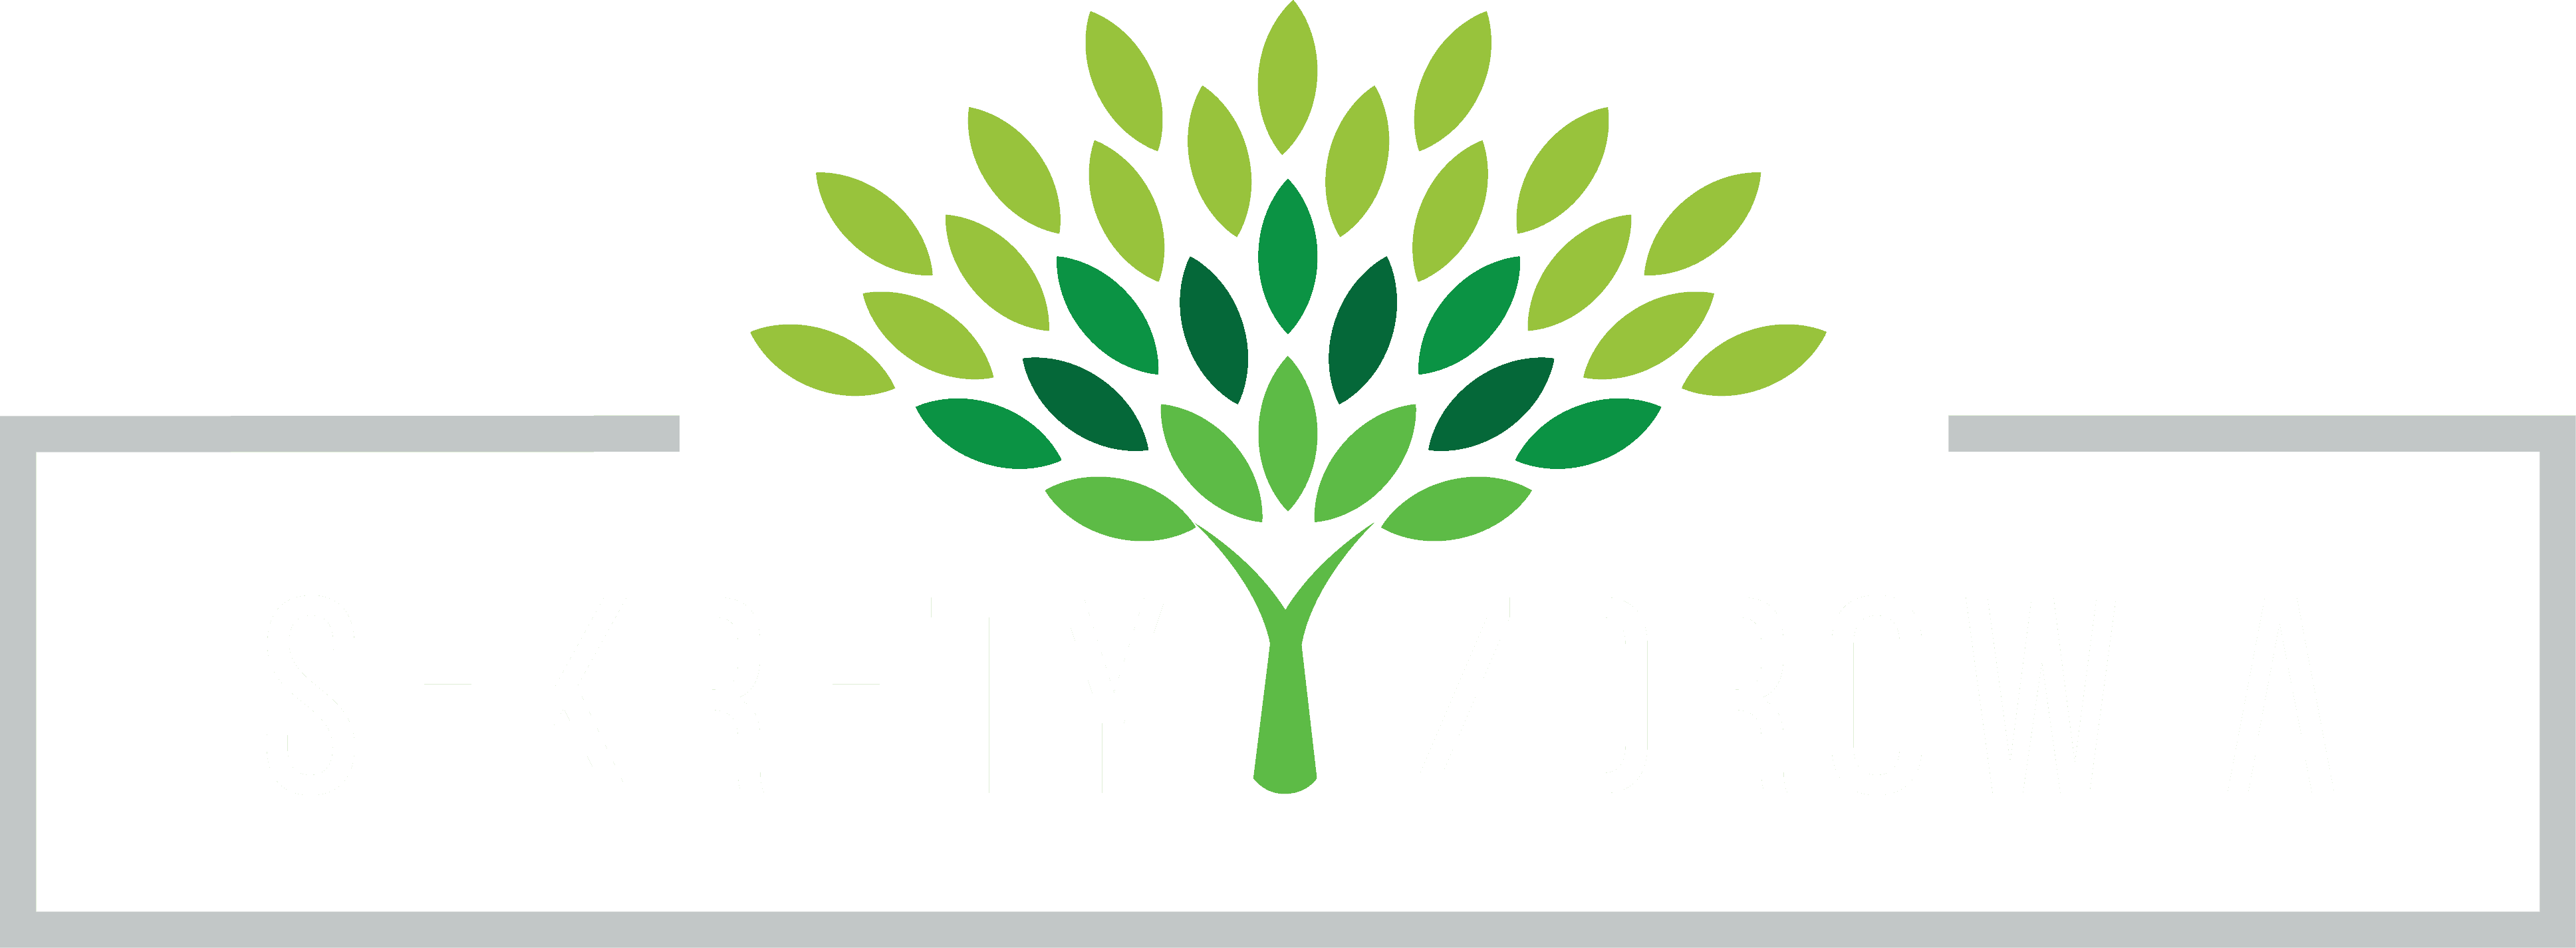 Sekrety-zdrowia.org